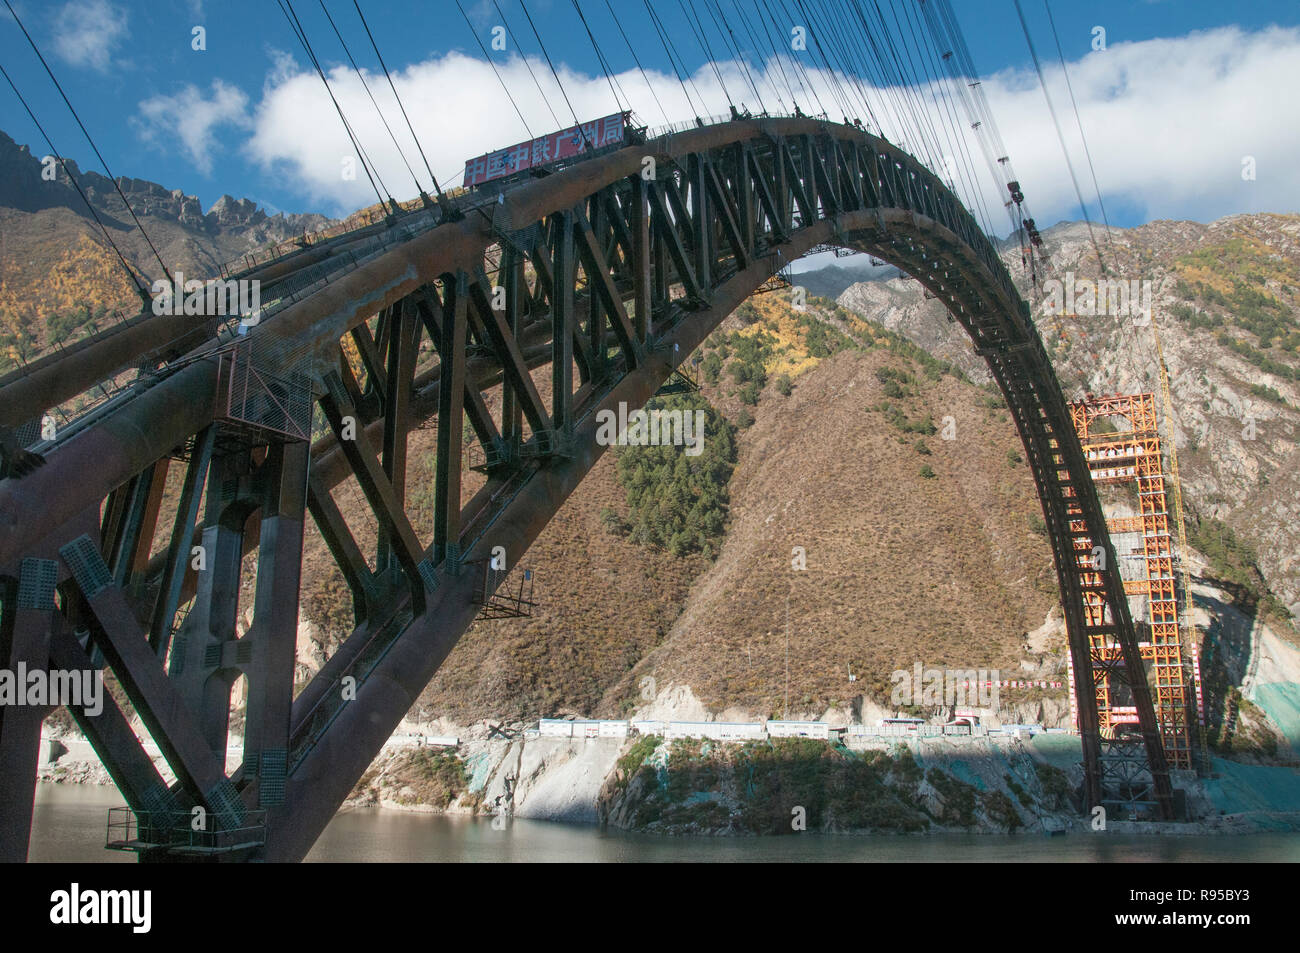 Steel arch of a railway bridge under construction spans the Yarlung Tsangpo or Brahmaputra River in Tibet, China - Stock Image